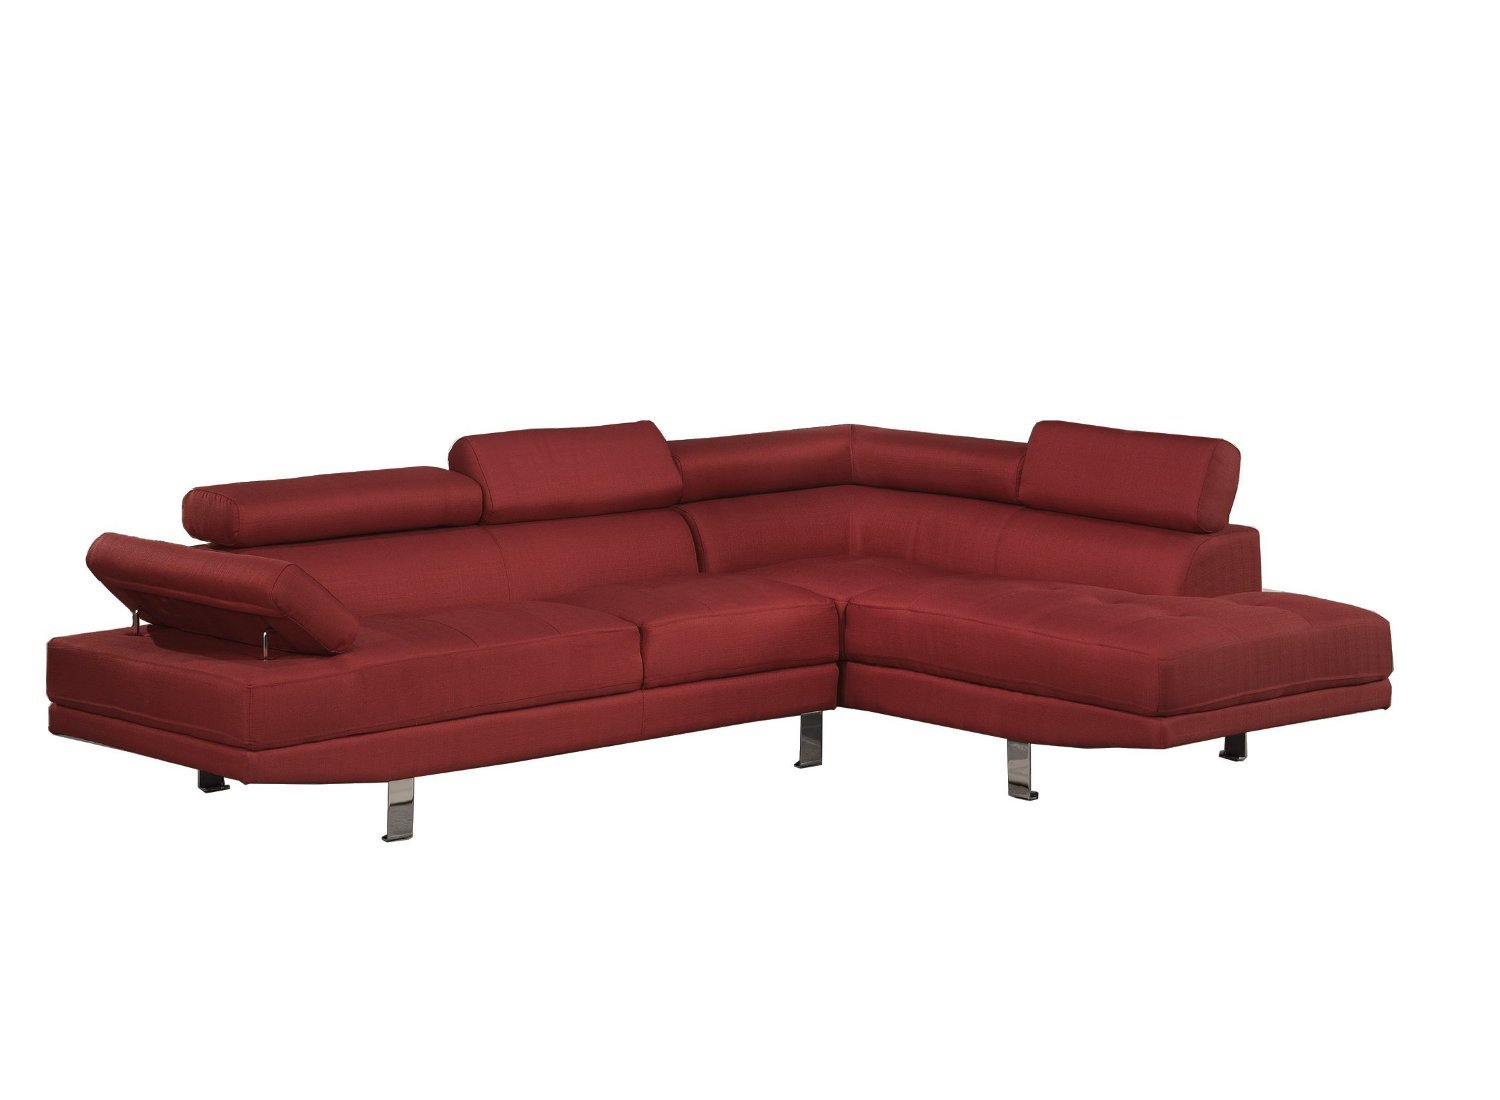 Modern Contemporary Linen Sectional Sofa with (Red)